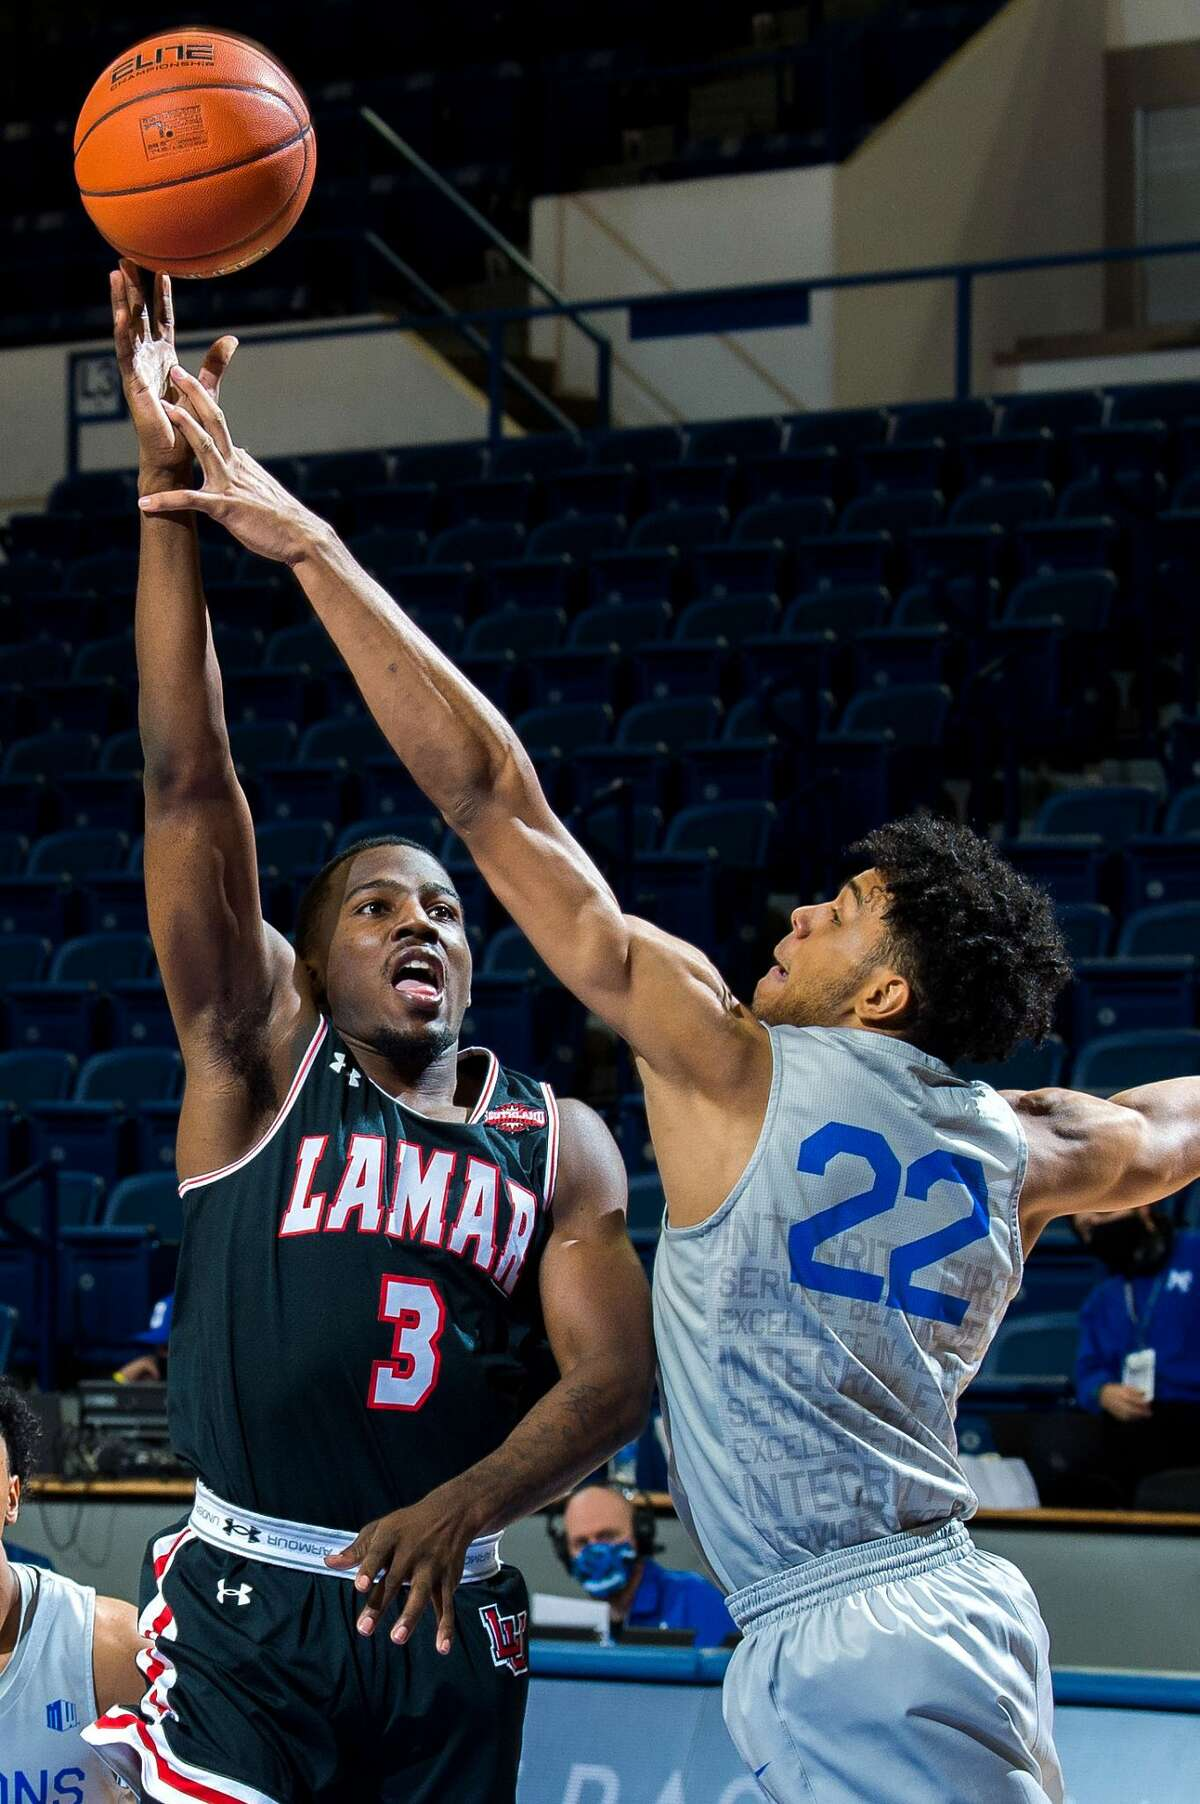 Lamar guard Ellis Jefferson attempts a shot over an Air Force defender during the Cardinals' loss Saturday afternoon in Colorado Springs, Colorado. (U.S. Air Force photo/Trevor Cokley)